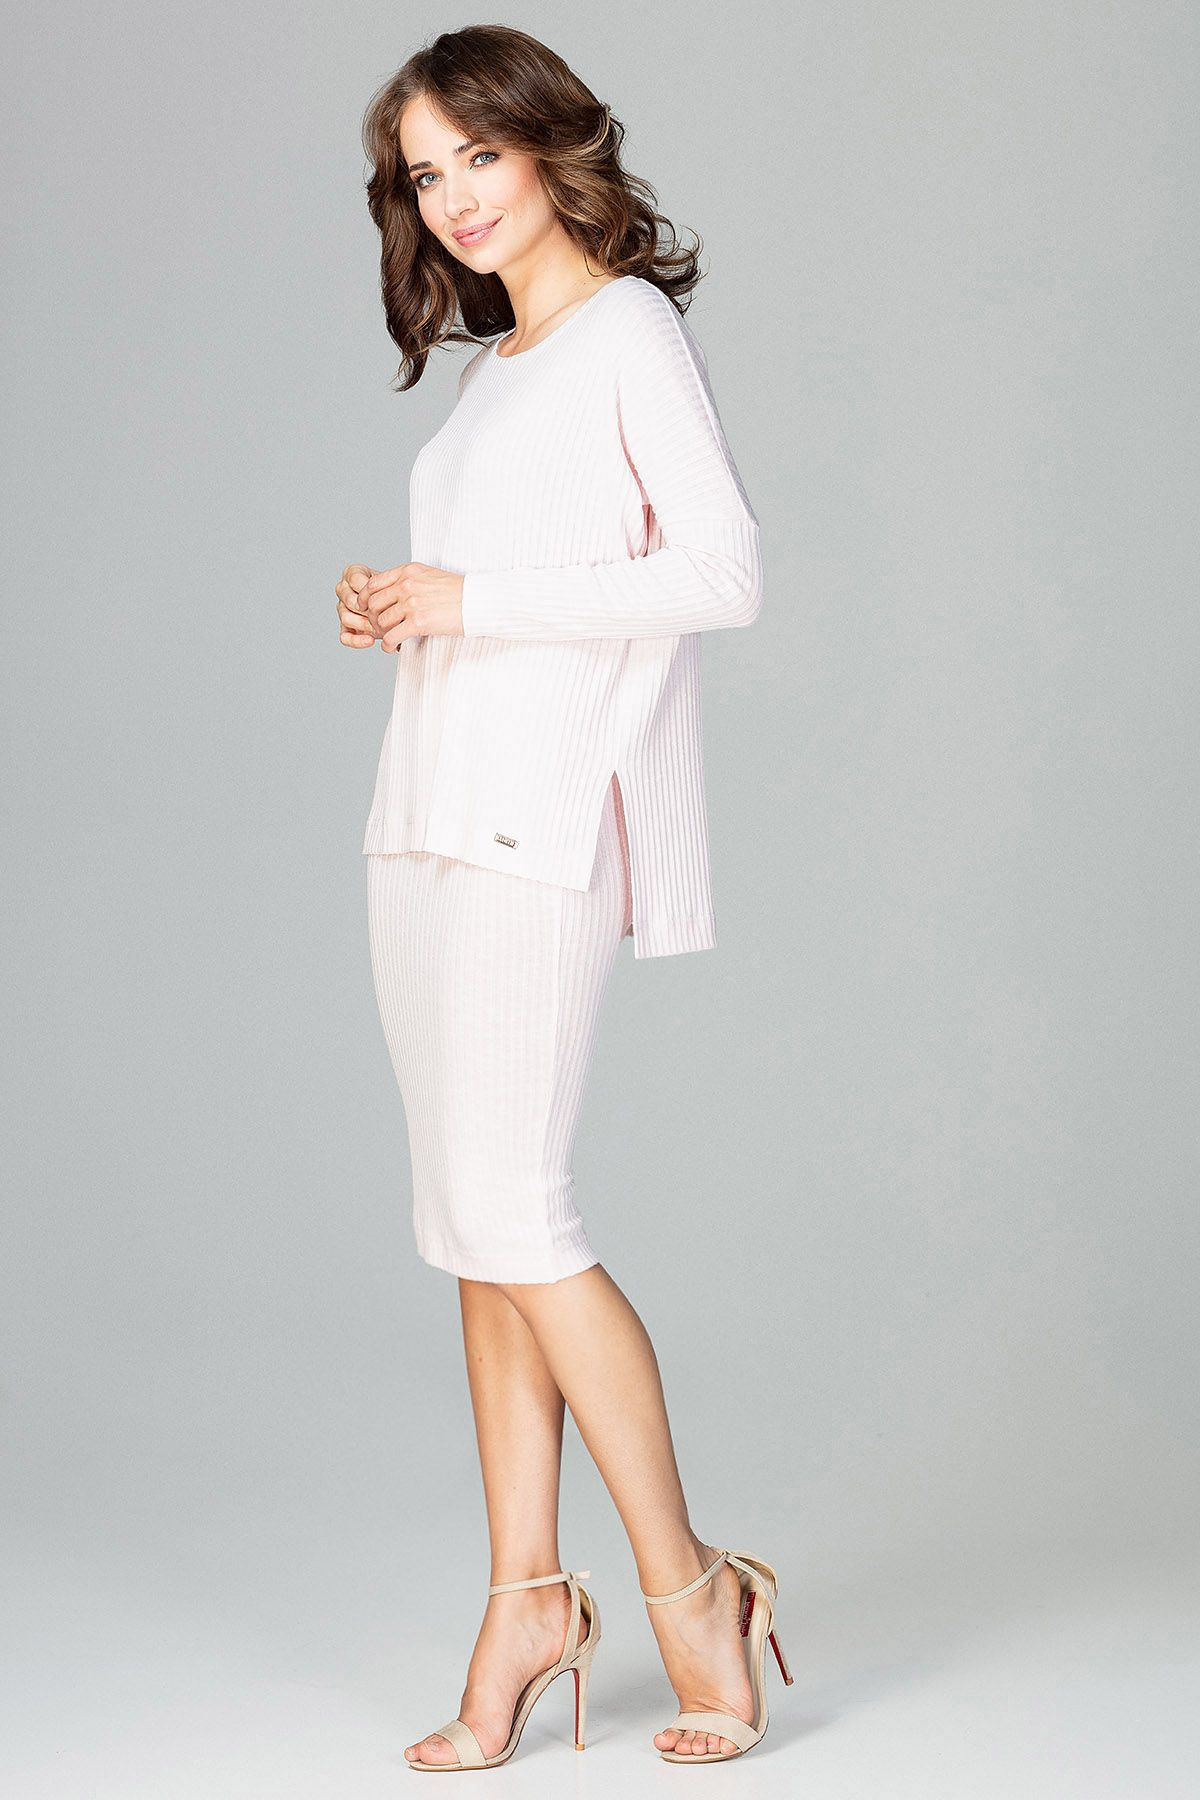 Blouse With a Skirt Co-ords